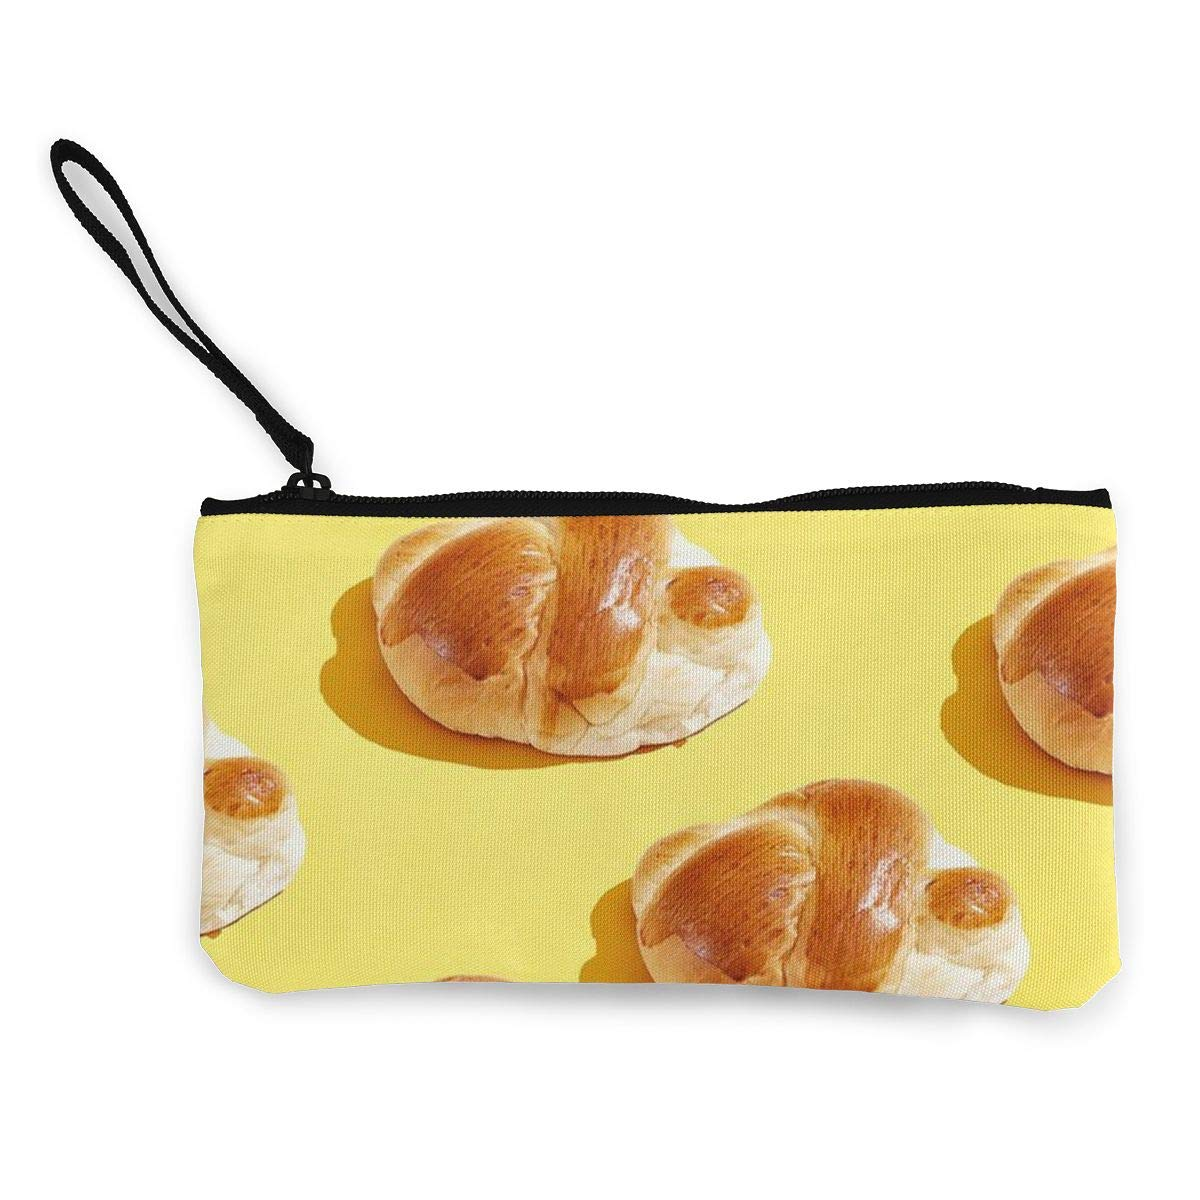 Cellphone Bag With Handle Make Up Bag TR7FD15DE Yummy French Croissant Pattern Zipper Canvas Coin Purse Wallet